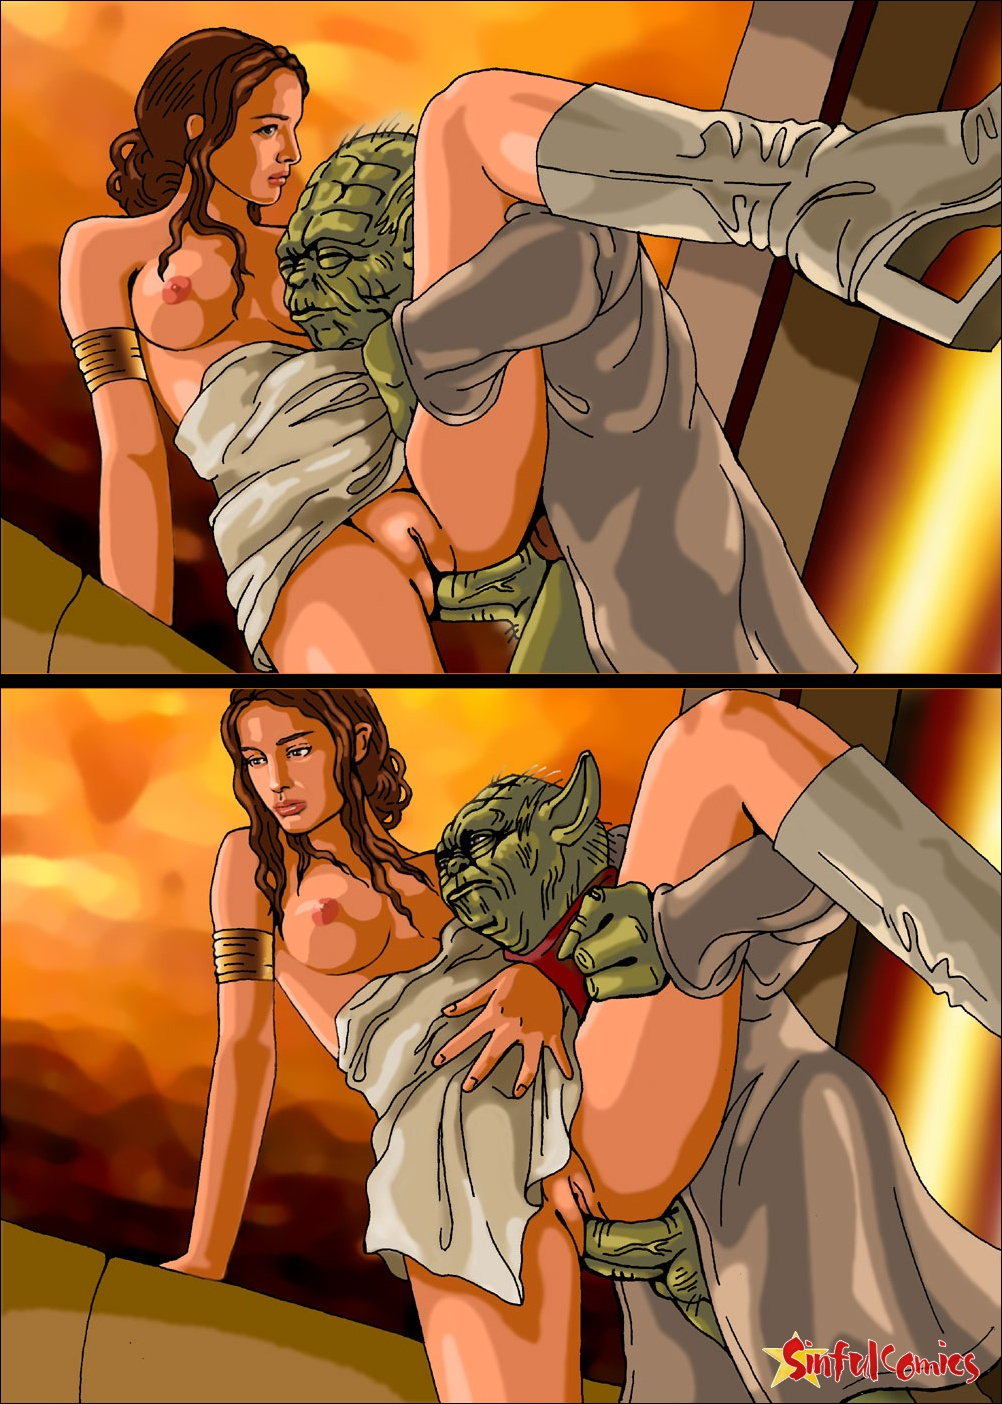 Sex star wars porno pics erotic video